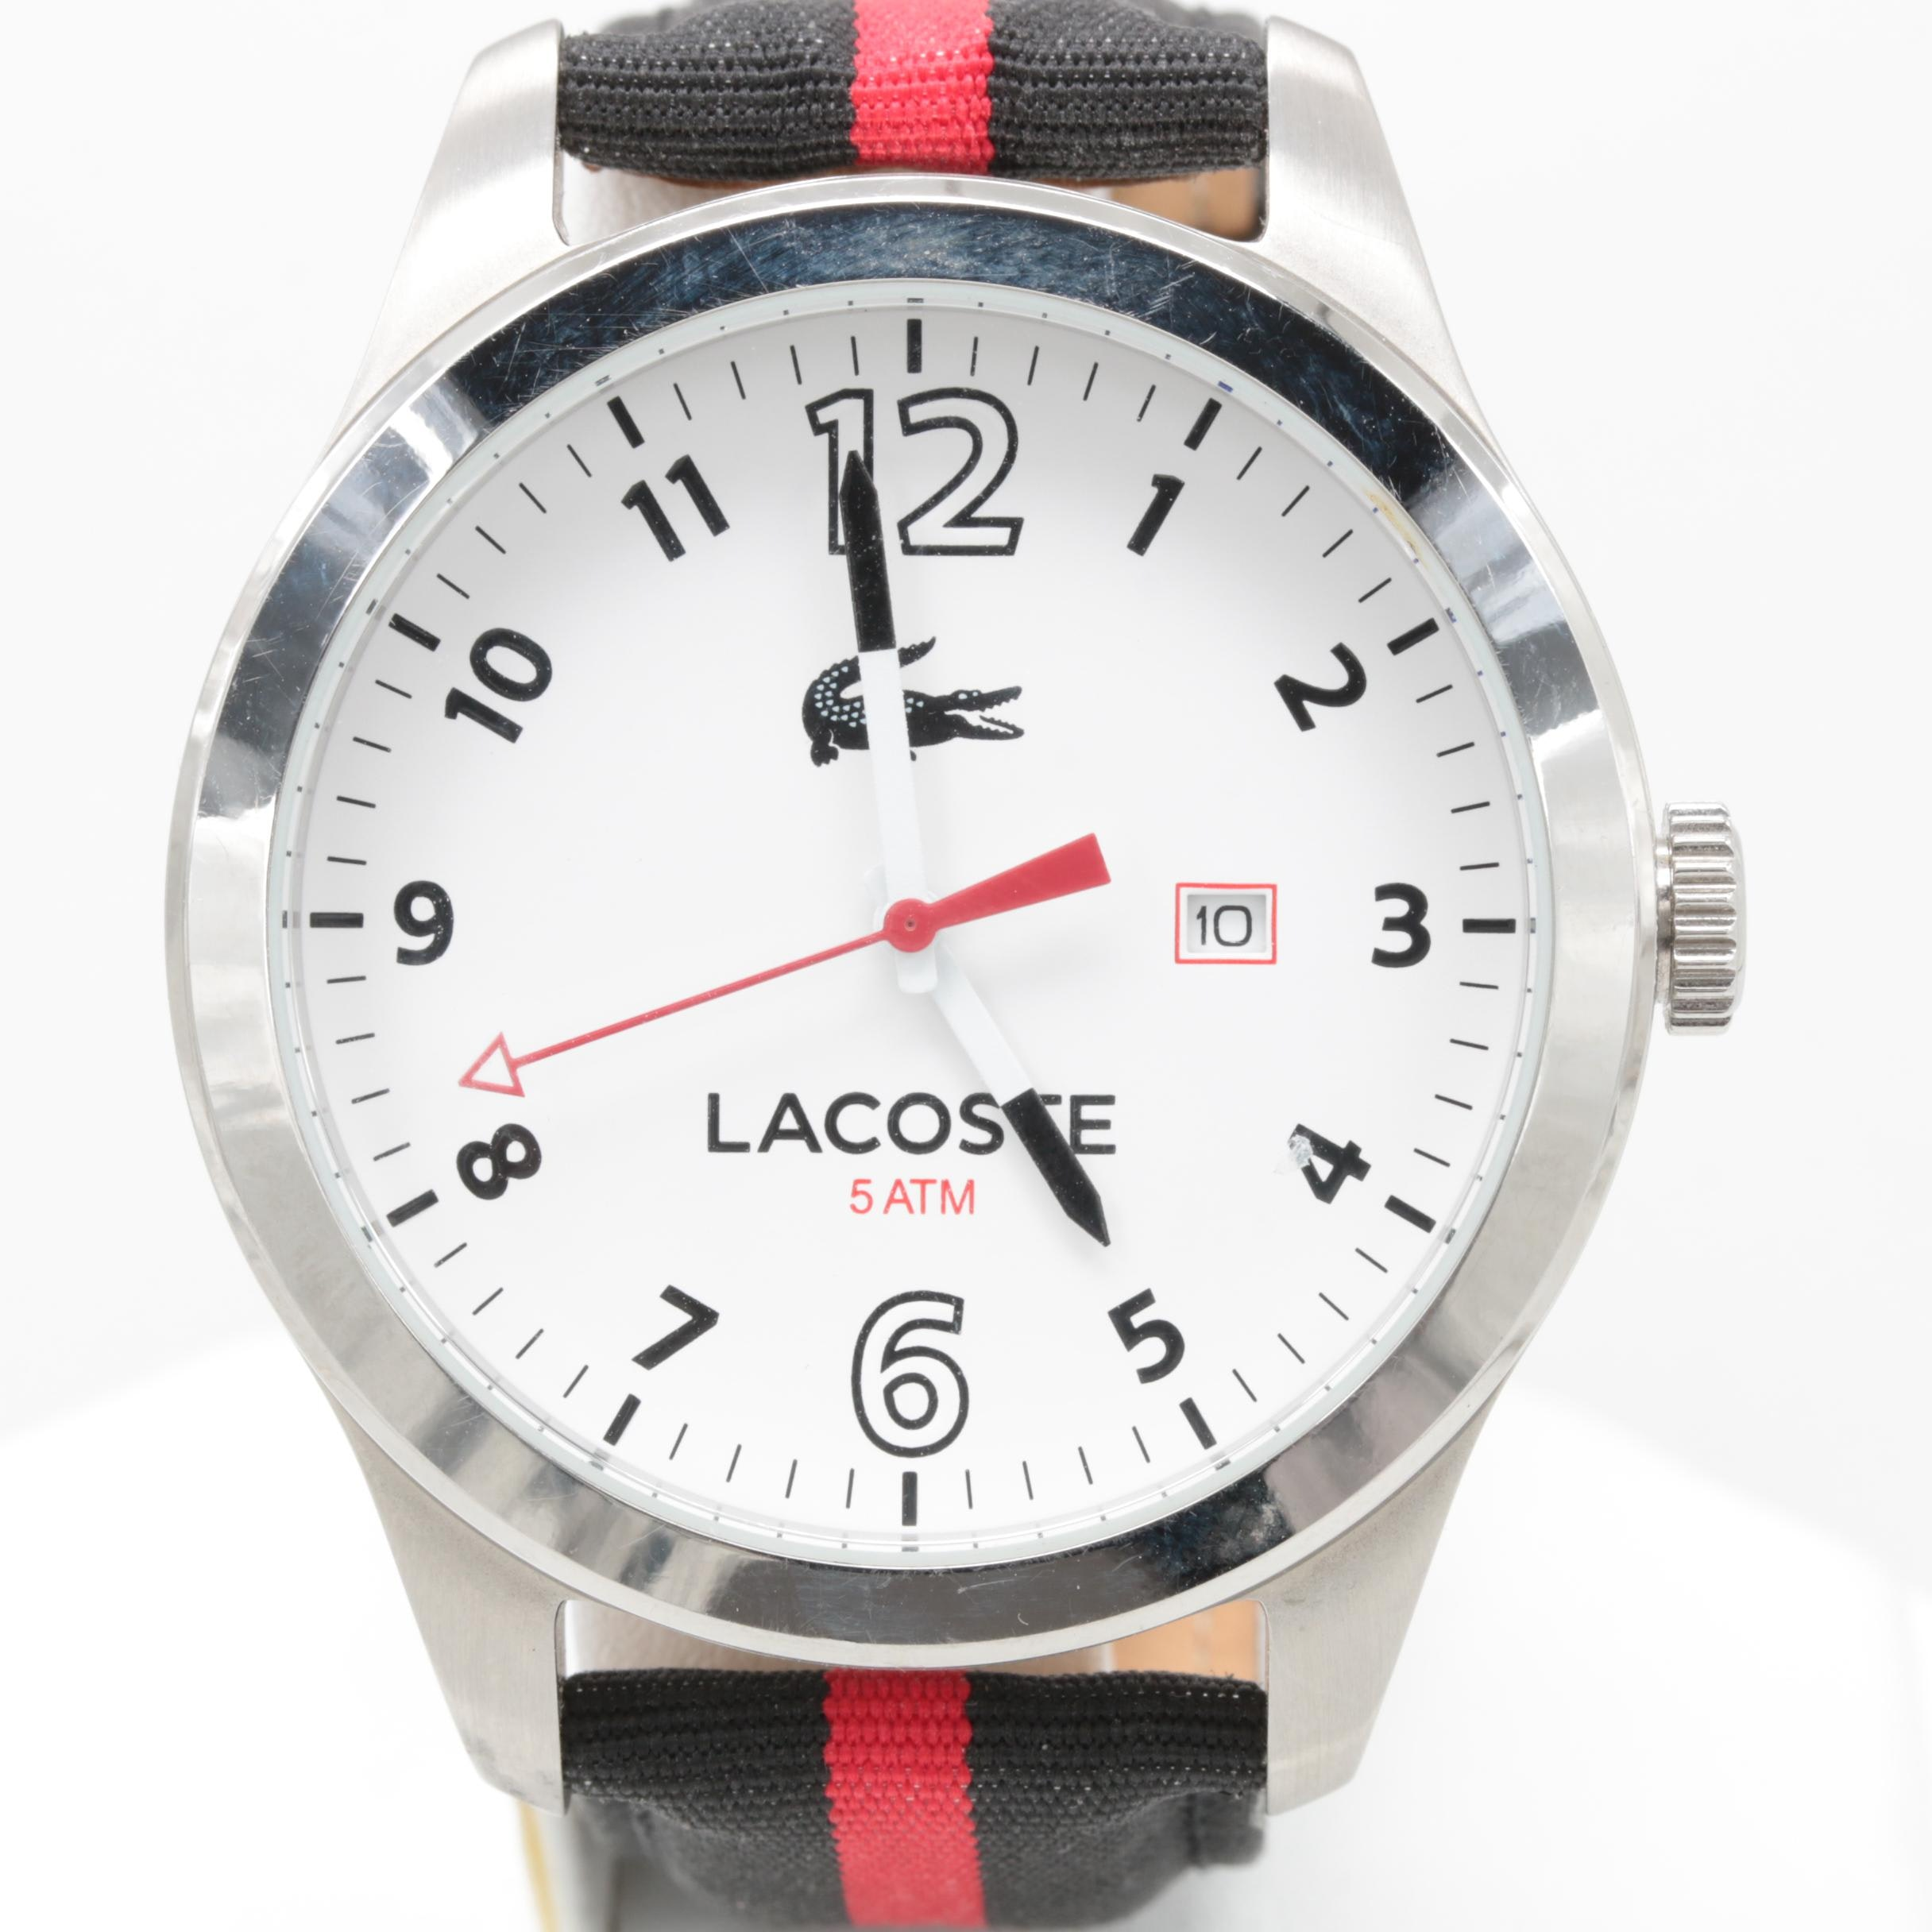 Lacoste Stainless Steel Wristwatch with Red and Black Leather Strap